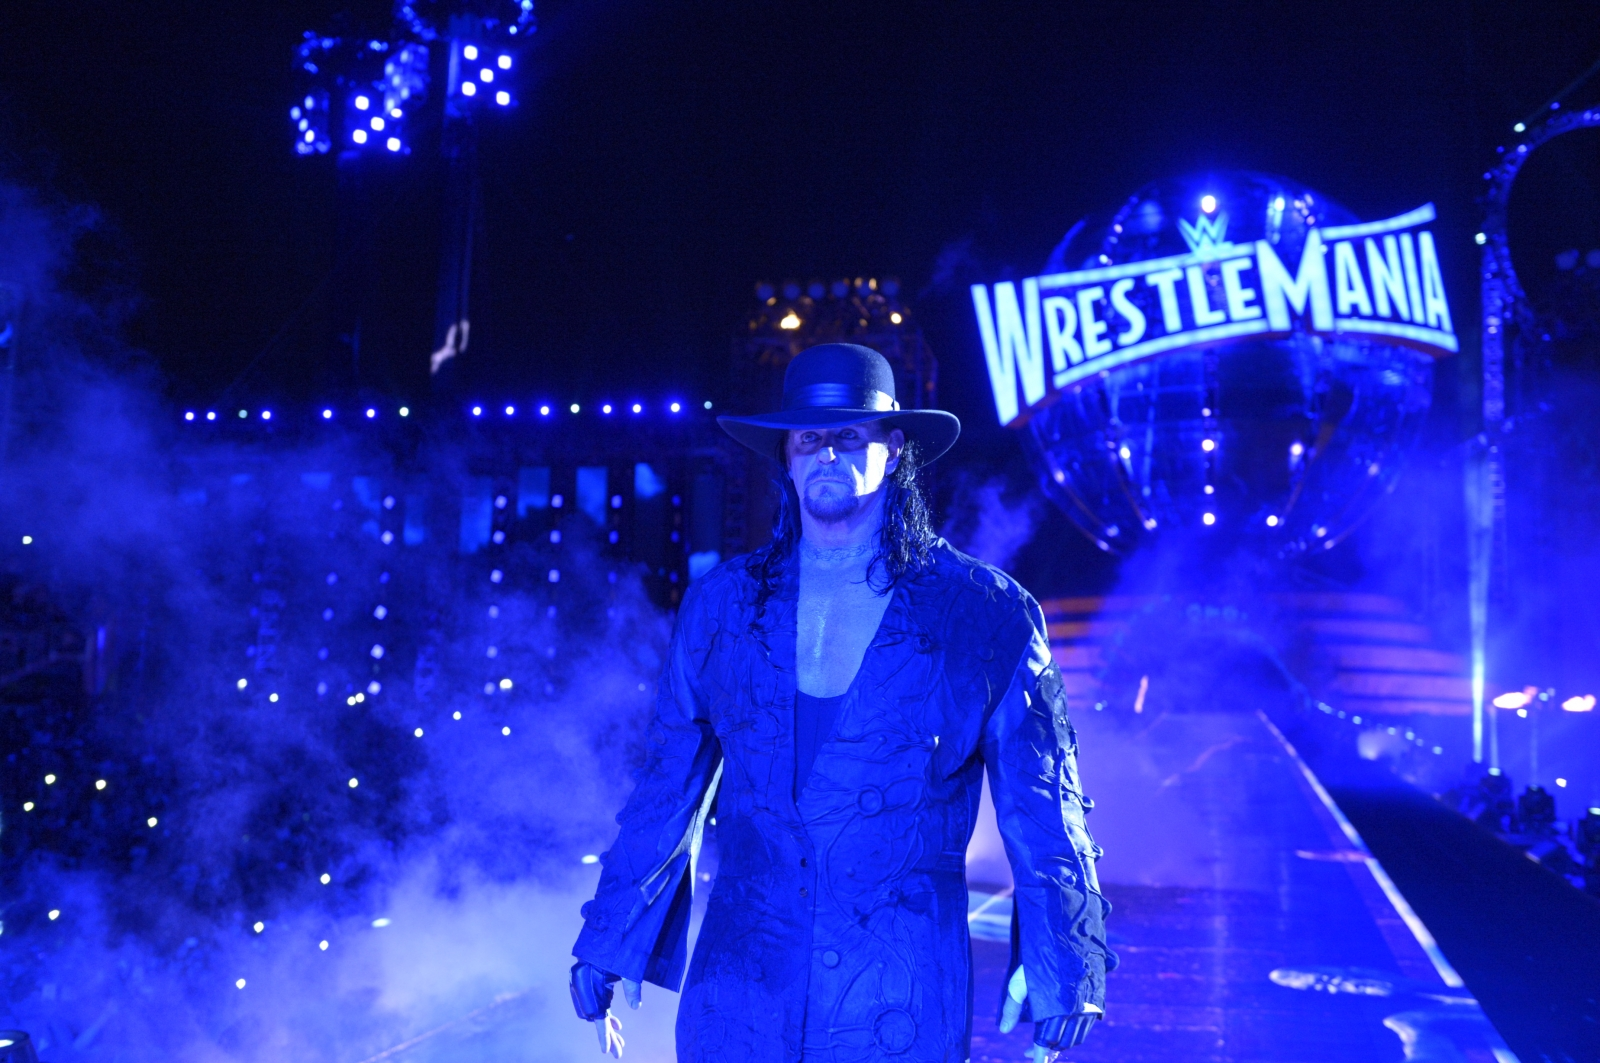 Wrestlemania 33 Undertaker Retirement Match Video And